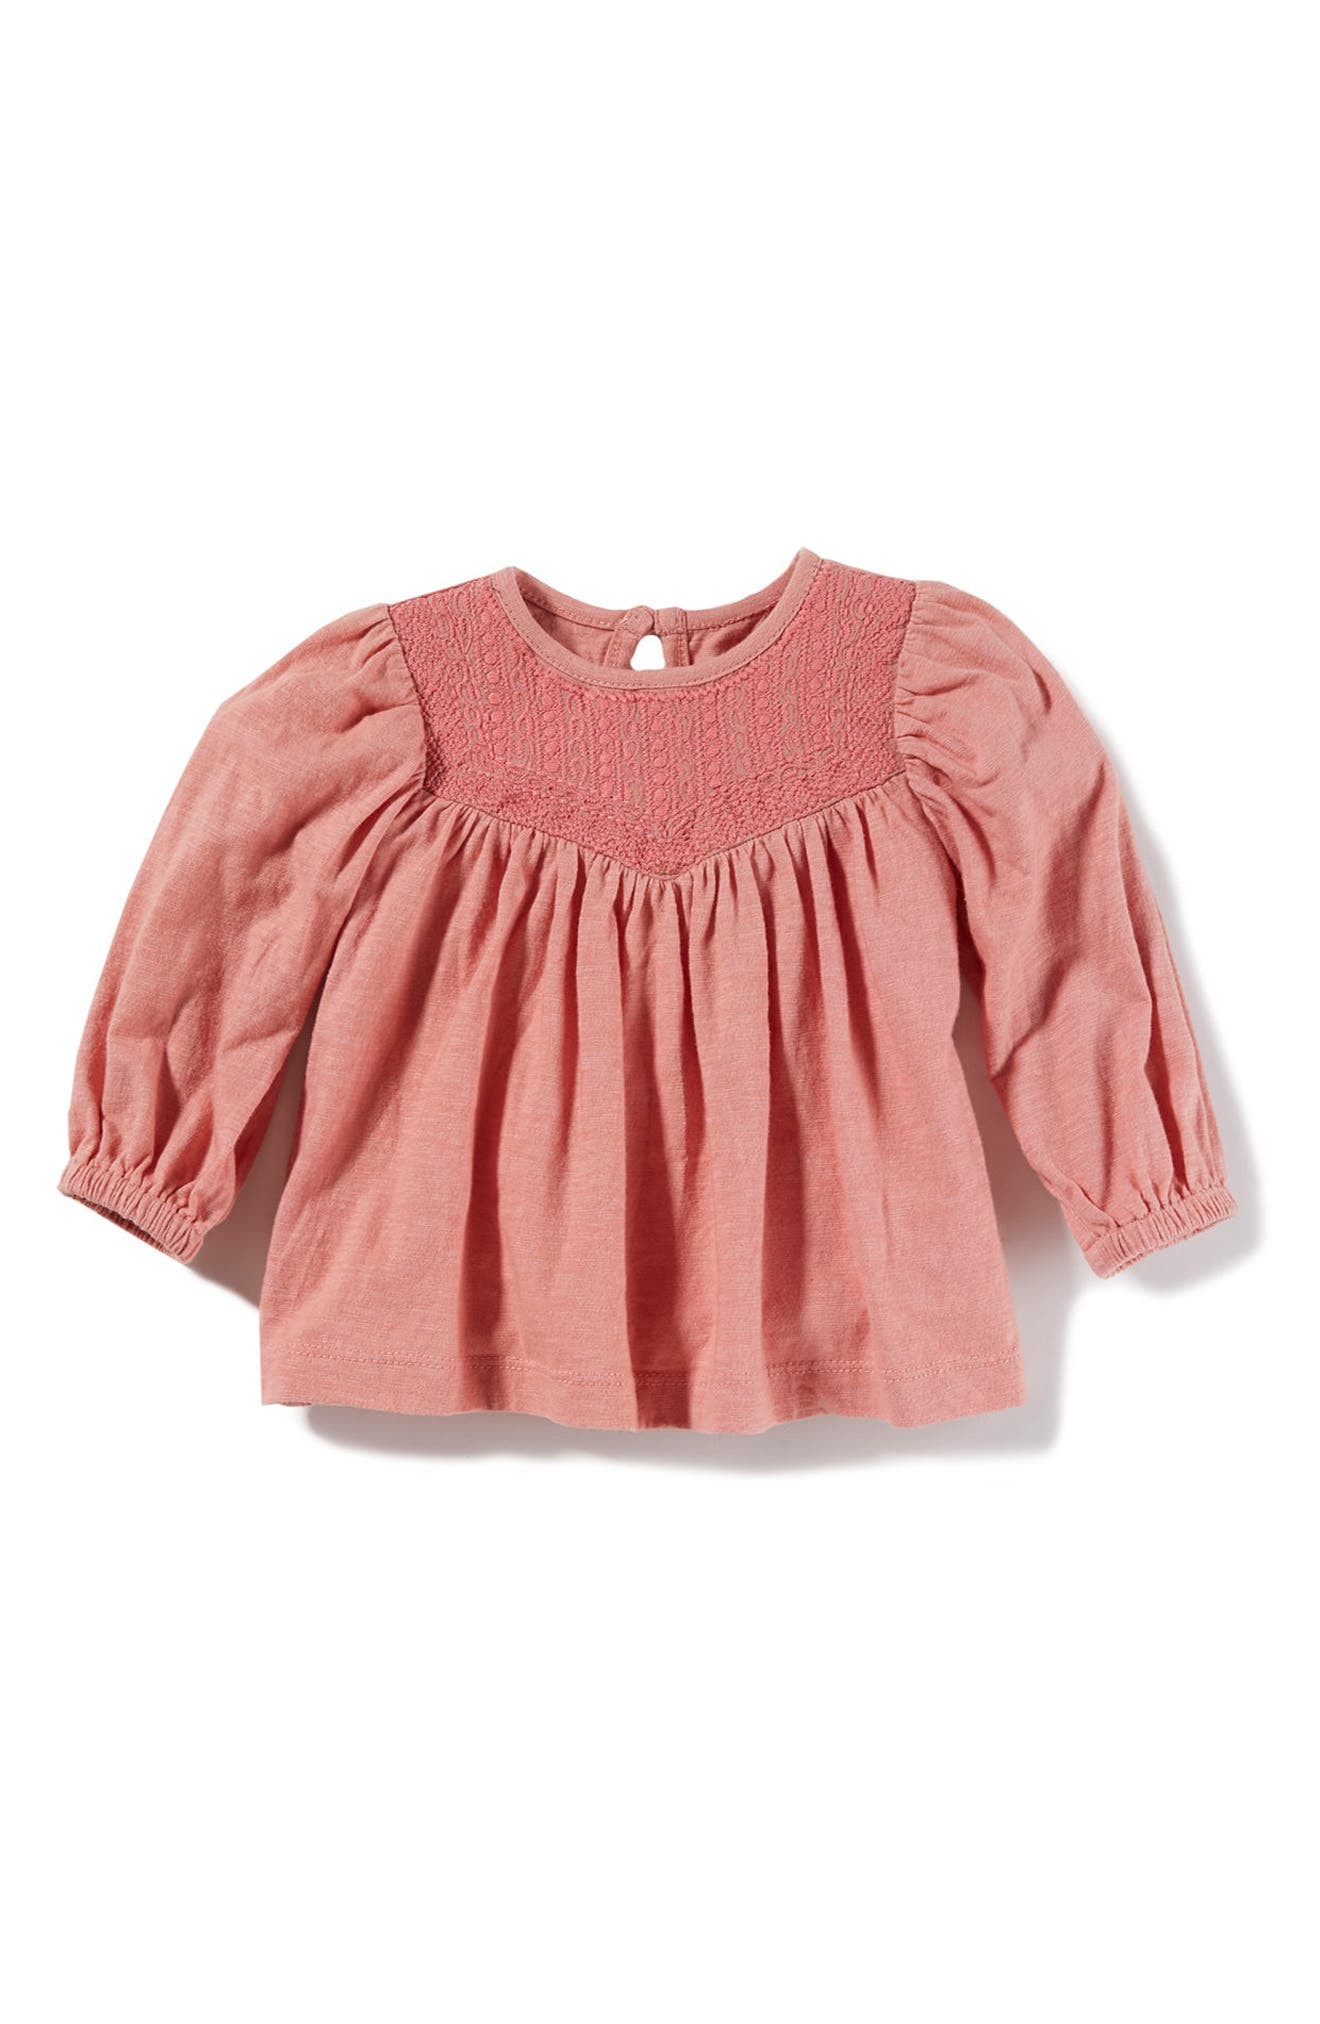 Lidia Tunic,                         Main,                         color, New Light Pink